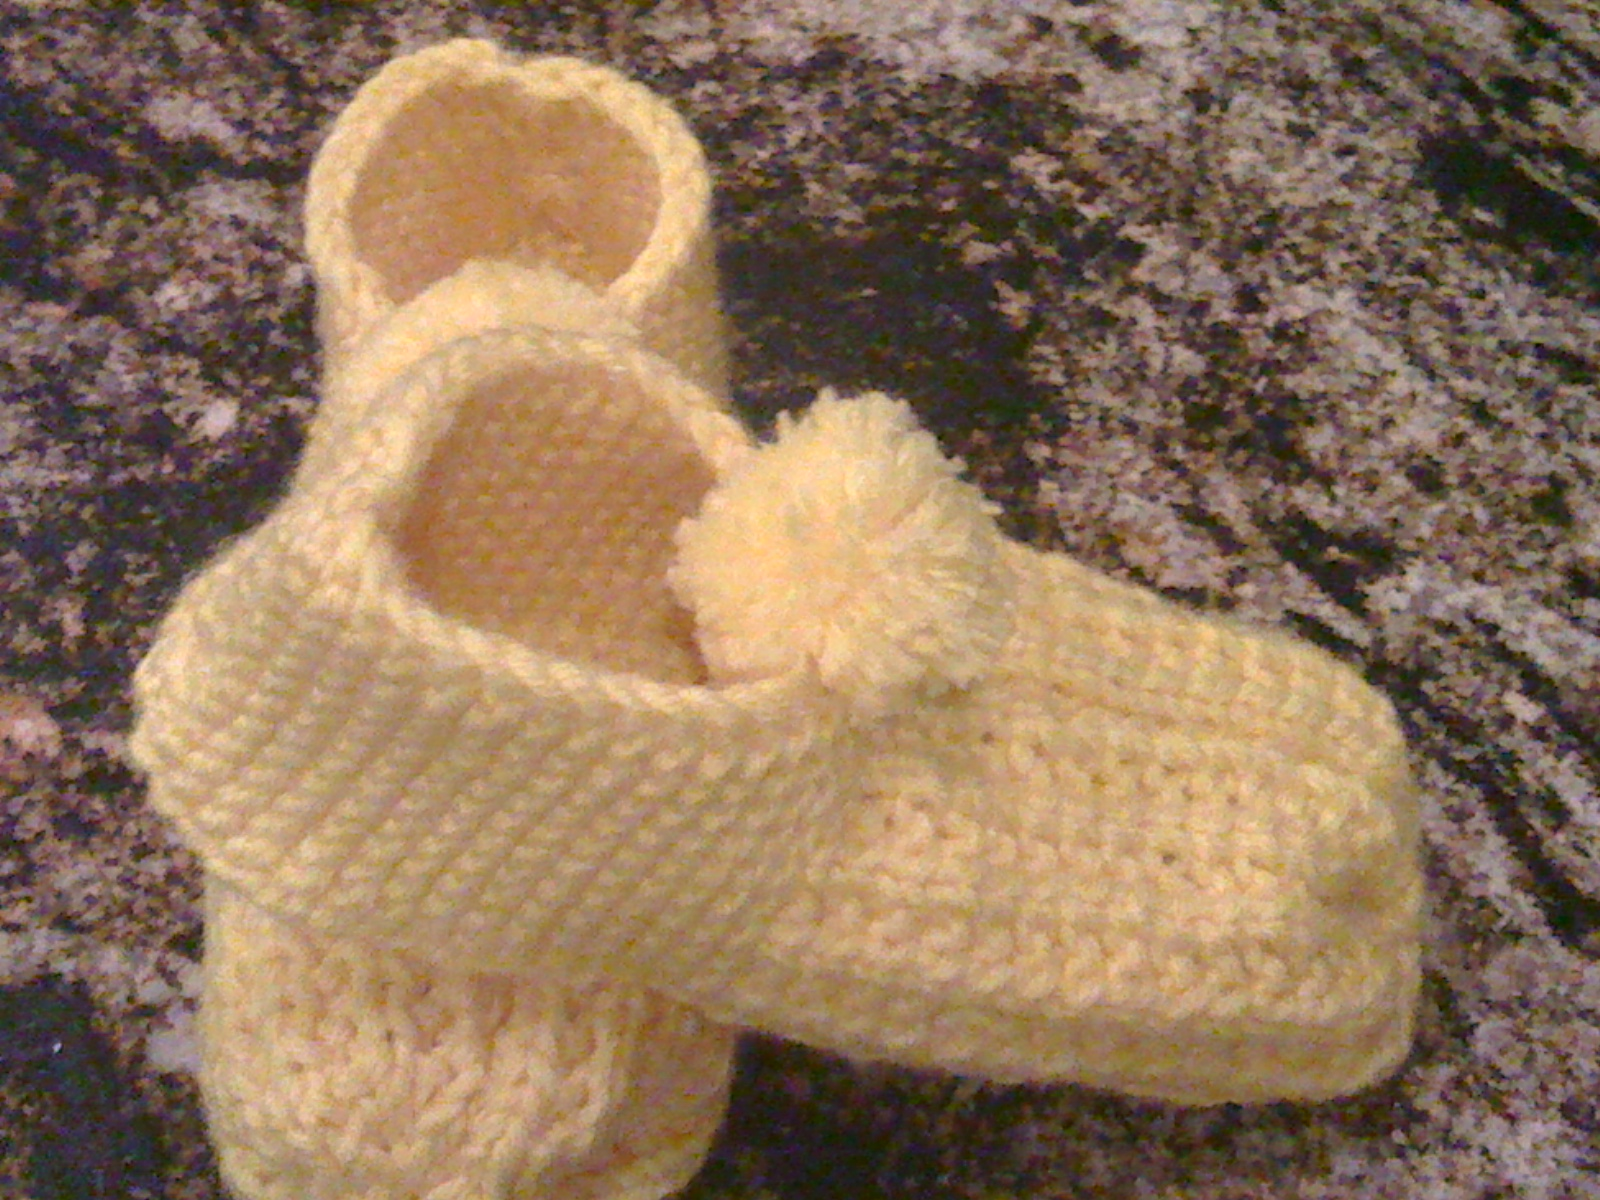 Mosier Farms: Rounded Heel Knitted Slipper Pattern